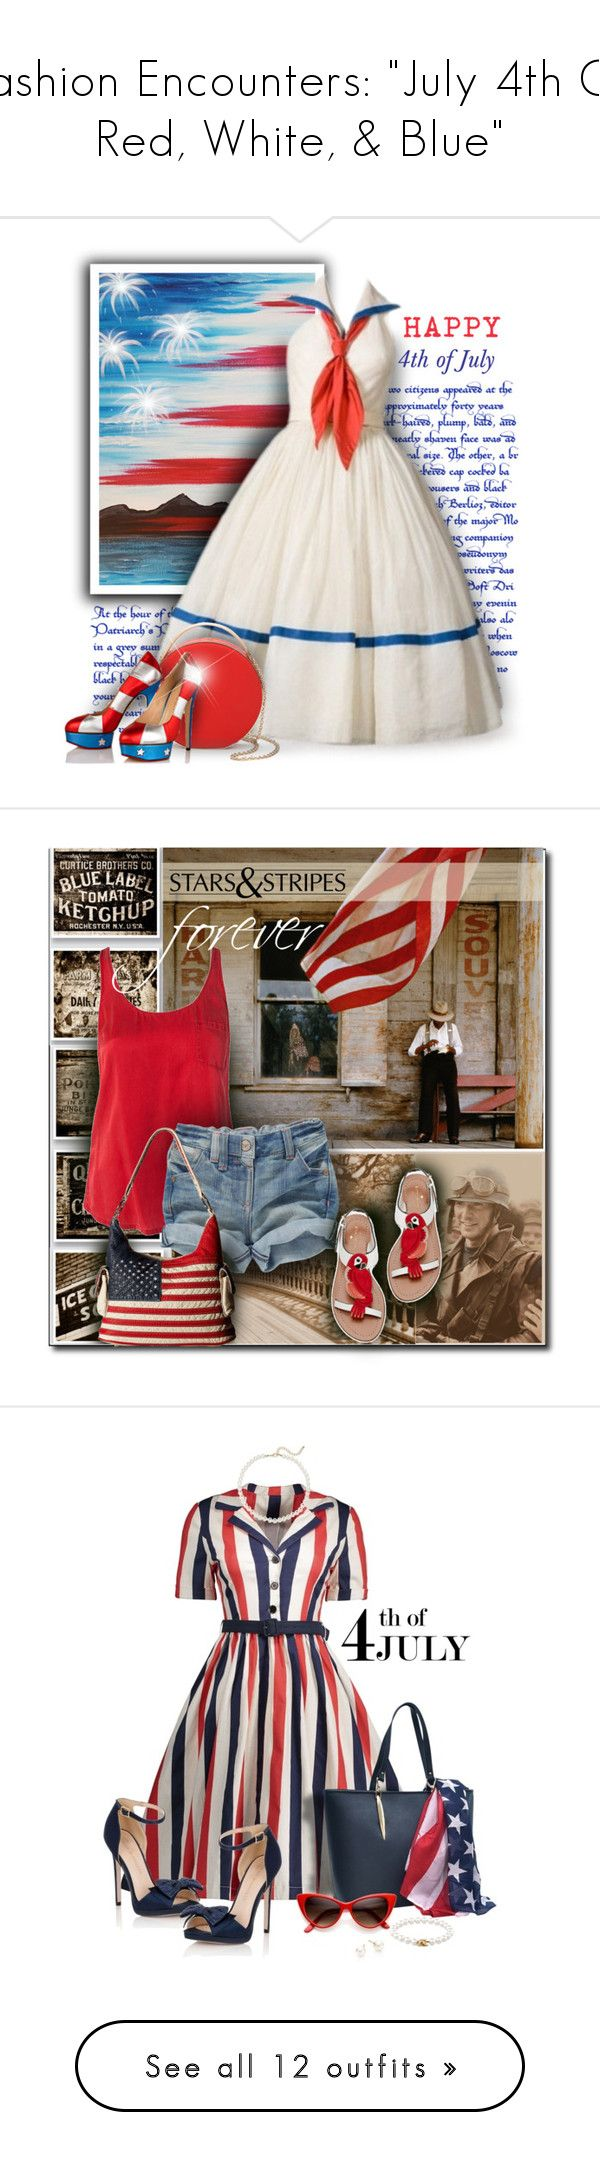 """Fashion Encounters: ""July 4th Or Red, White, & Blue"""" by majezy ❤ liked on Polyvore featuring Charlotte Olympia, Eddie Borgo, BOSS Orange, Kate Spade, M&F Western, Dasein, Saks Fifth Avenue, Little Mistress, Tiffany & Co. and Majorica"